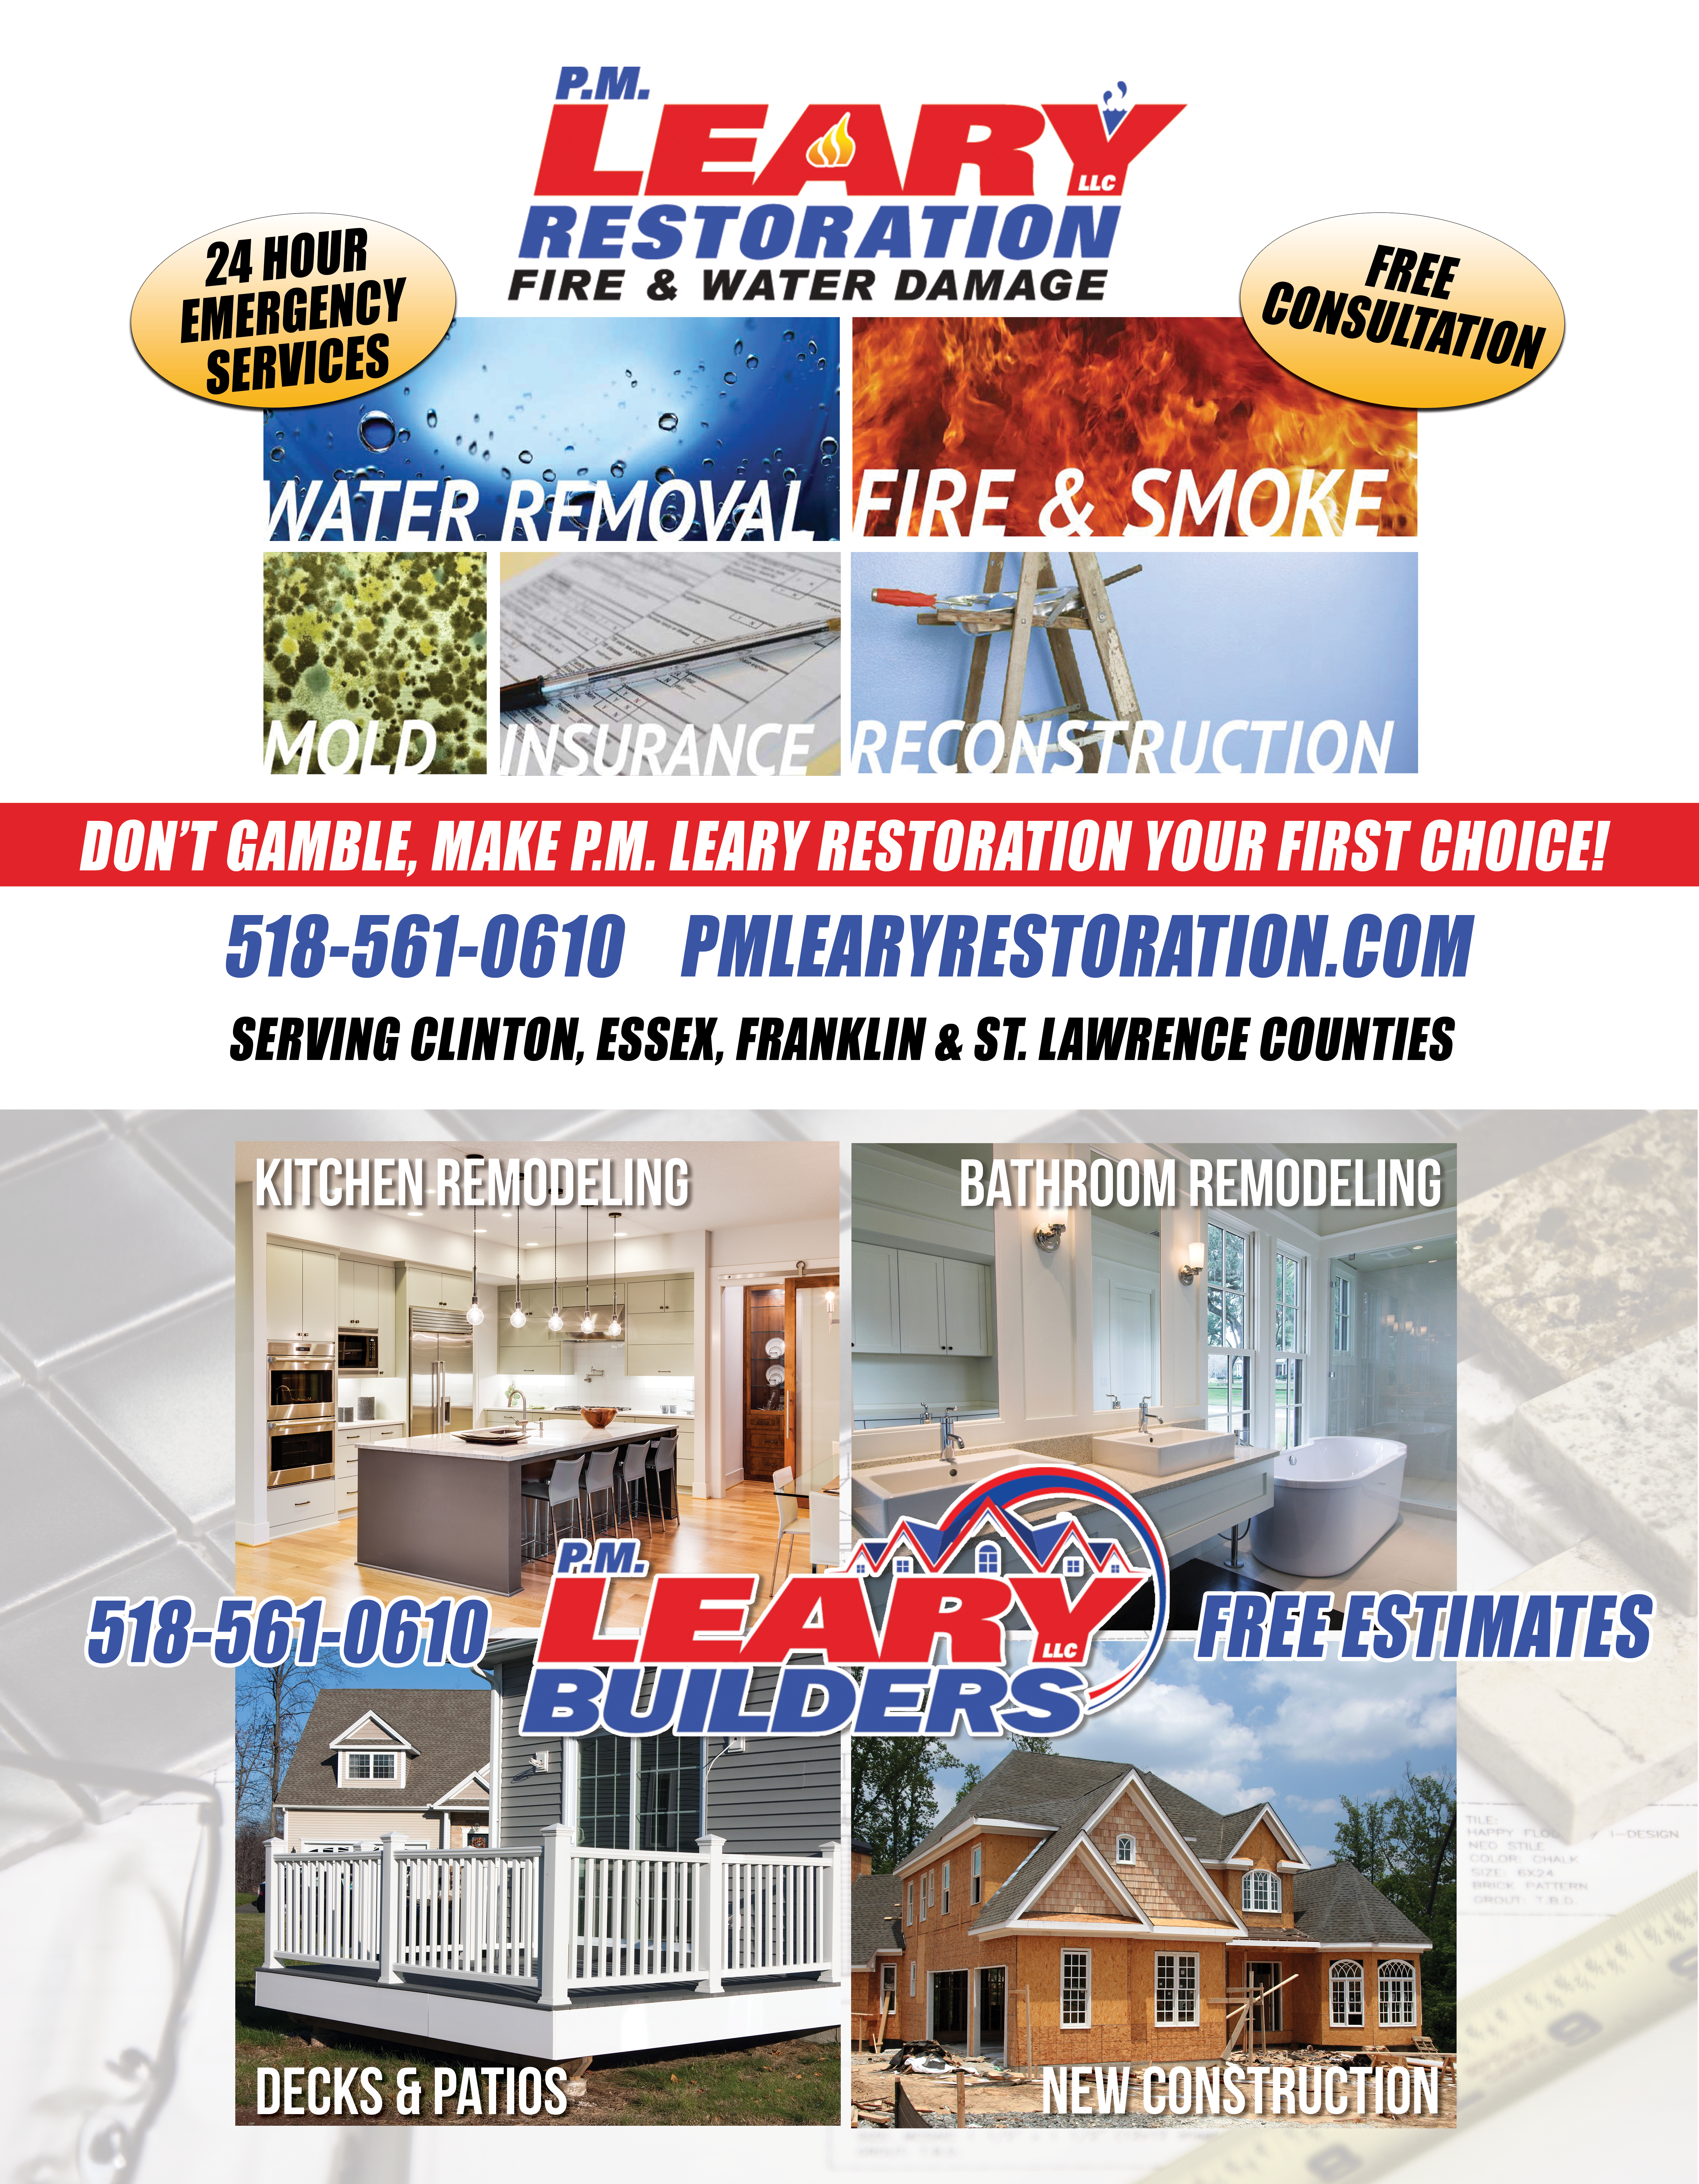 STRICKTLY BUSINESS - PR-PM LEARY RESTORATION - FULL PAGE HORIZONTAL